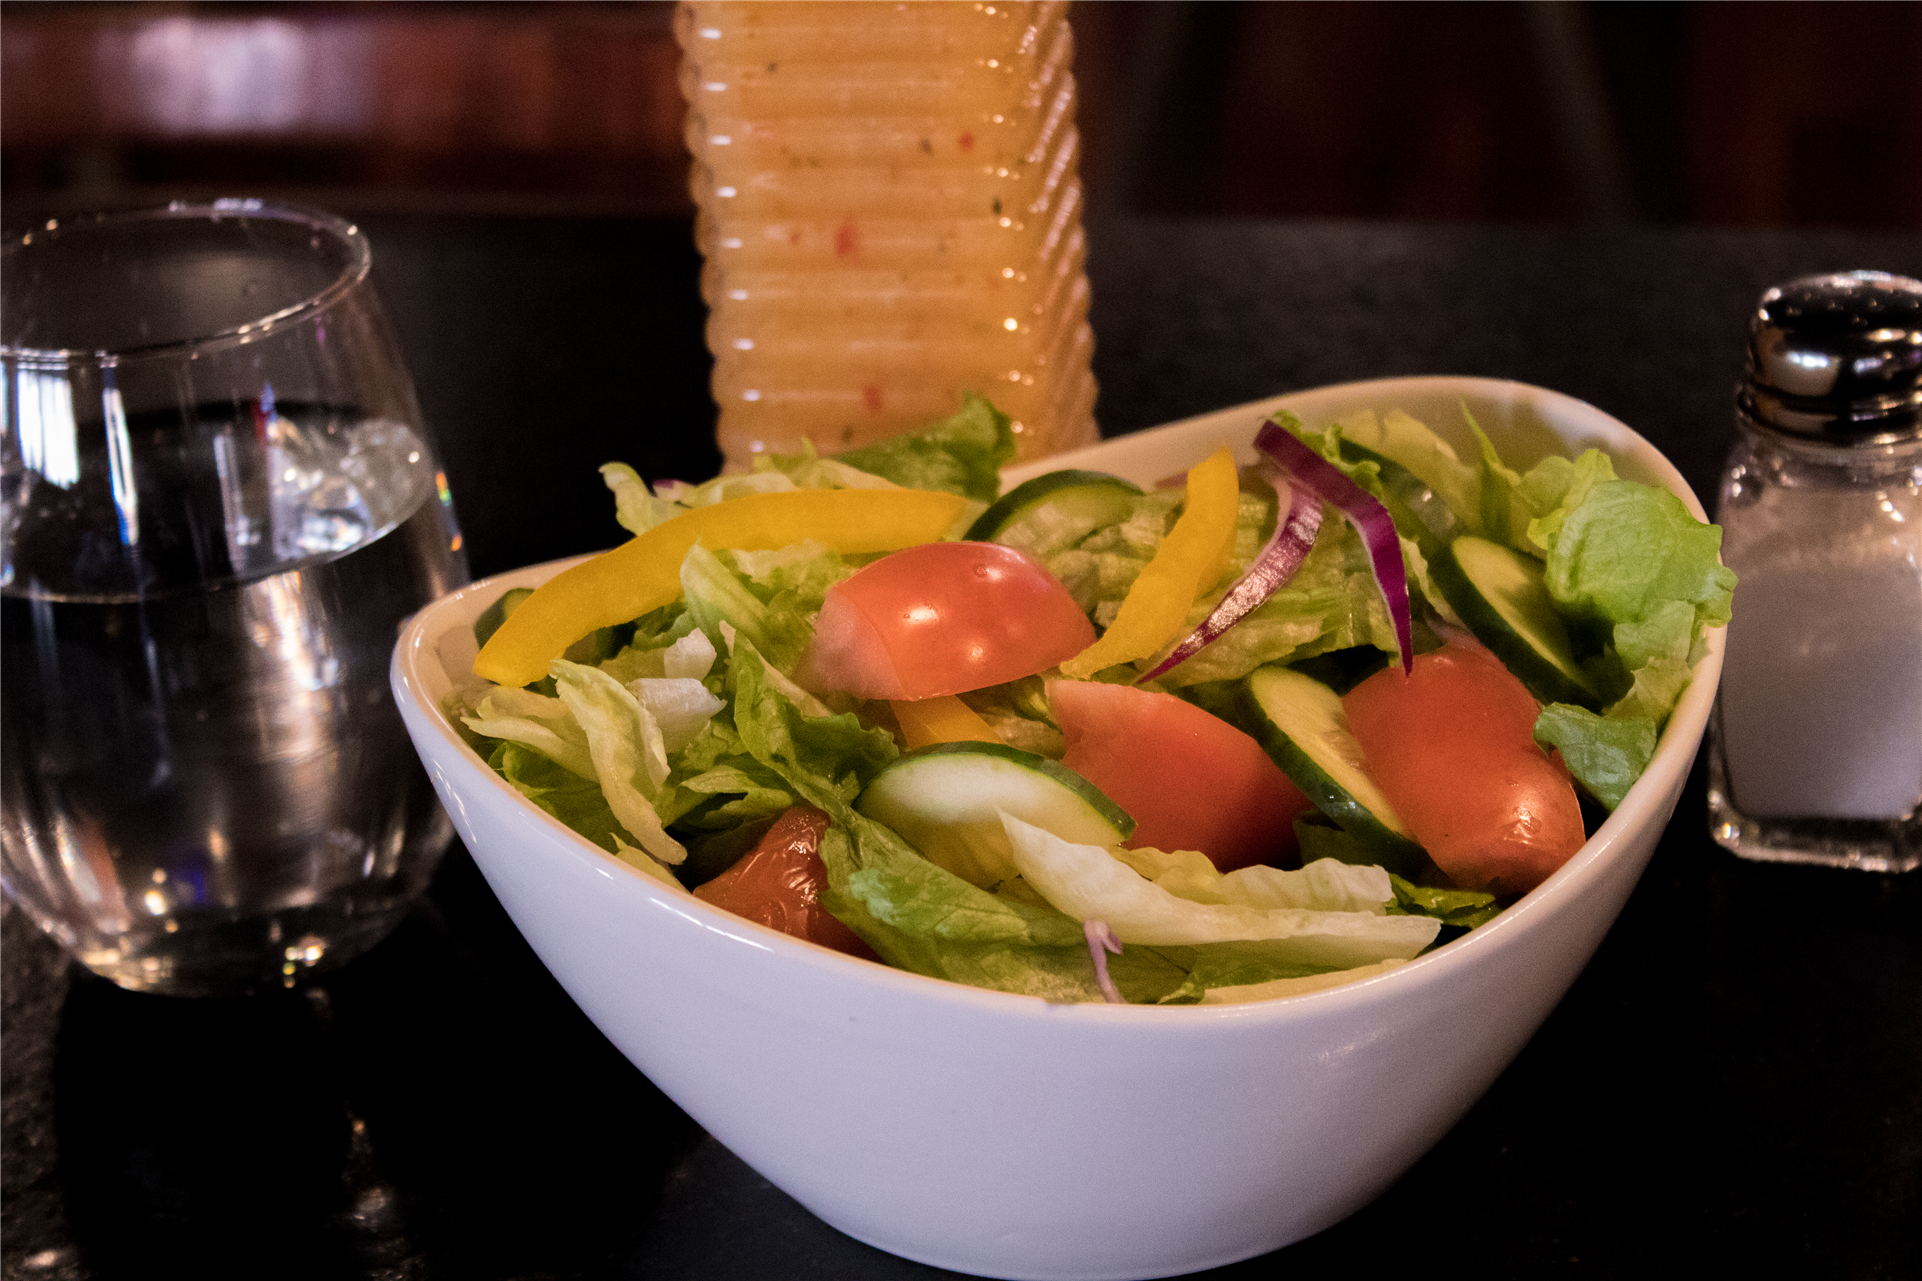 bowl of salad with a glass of water